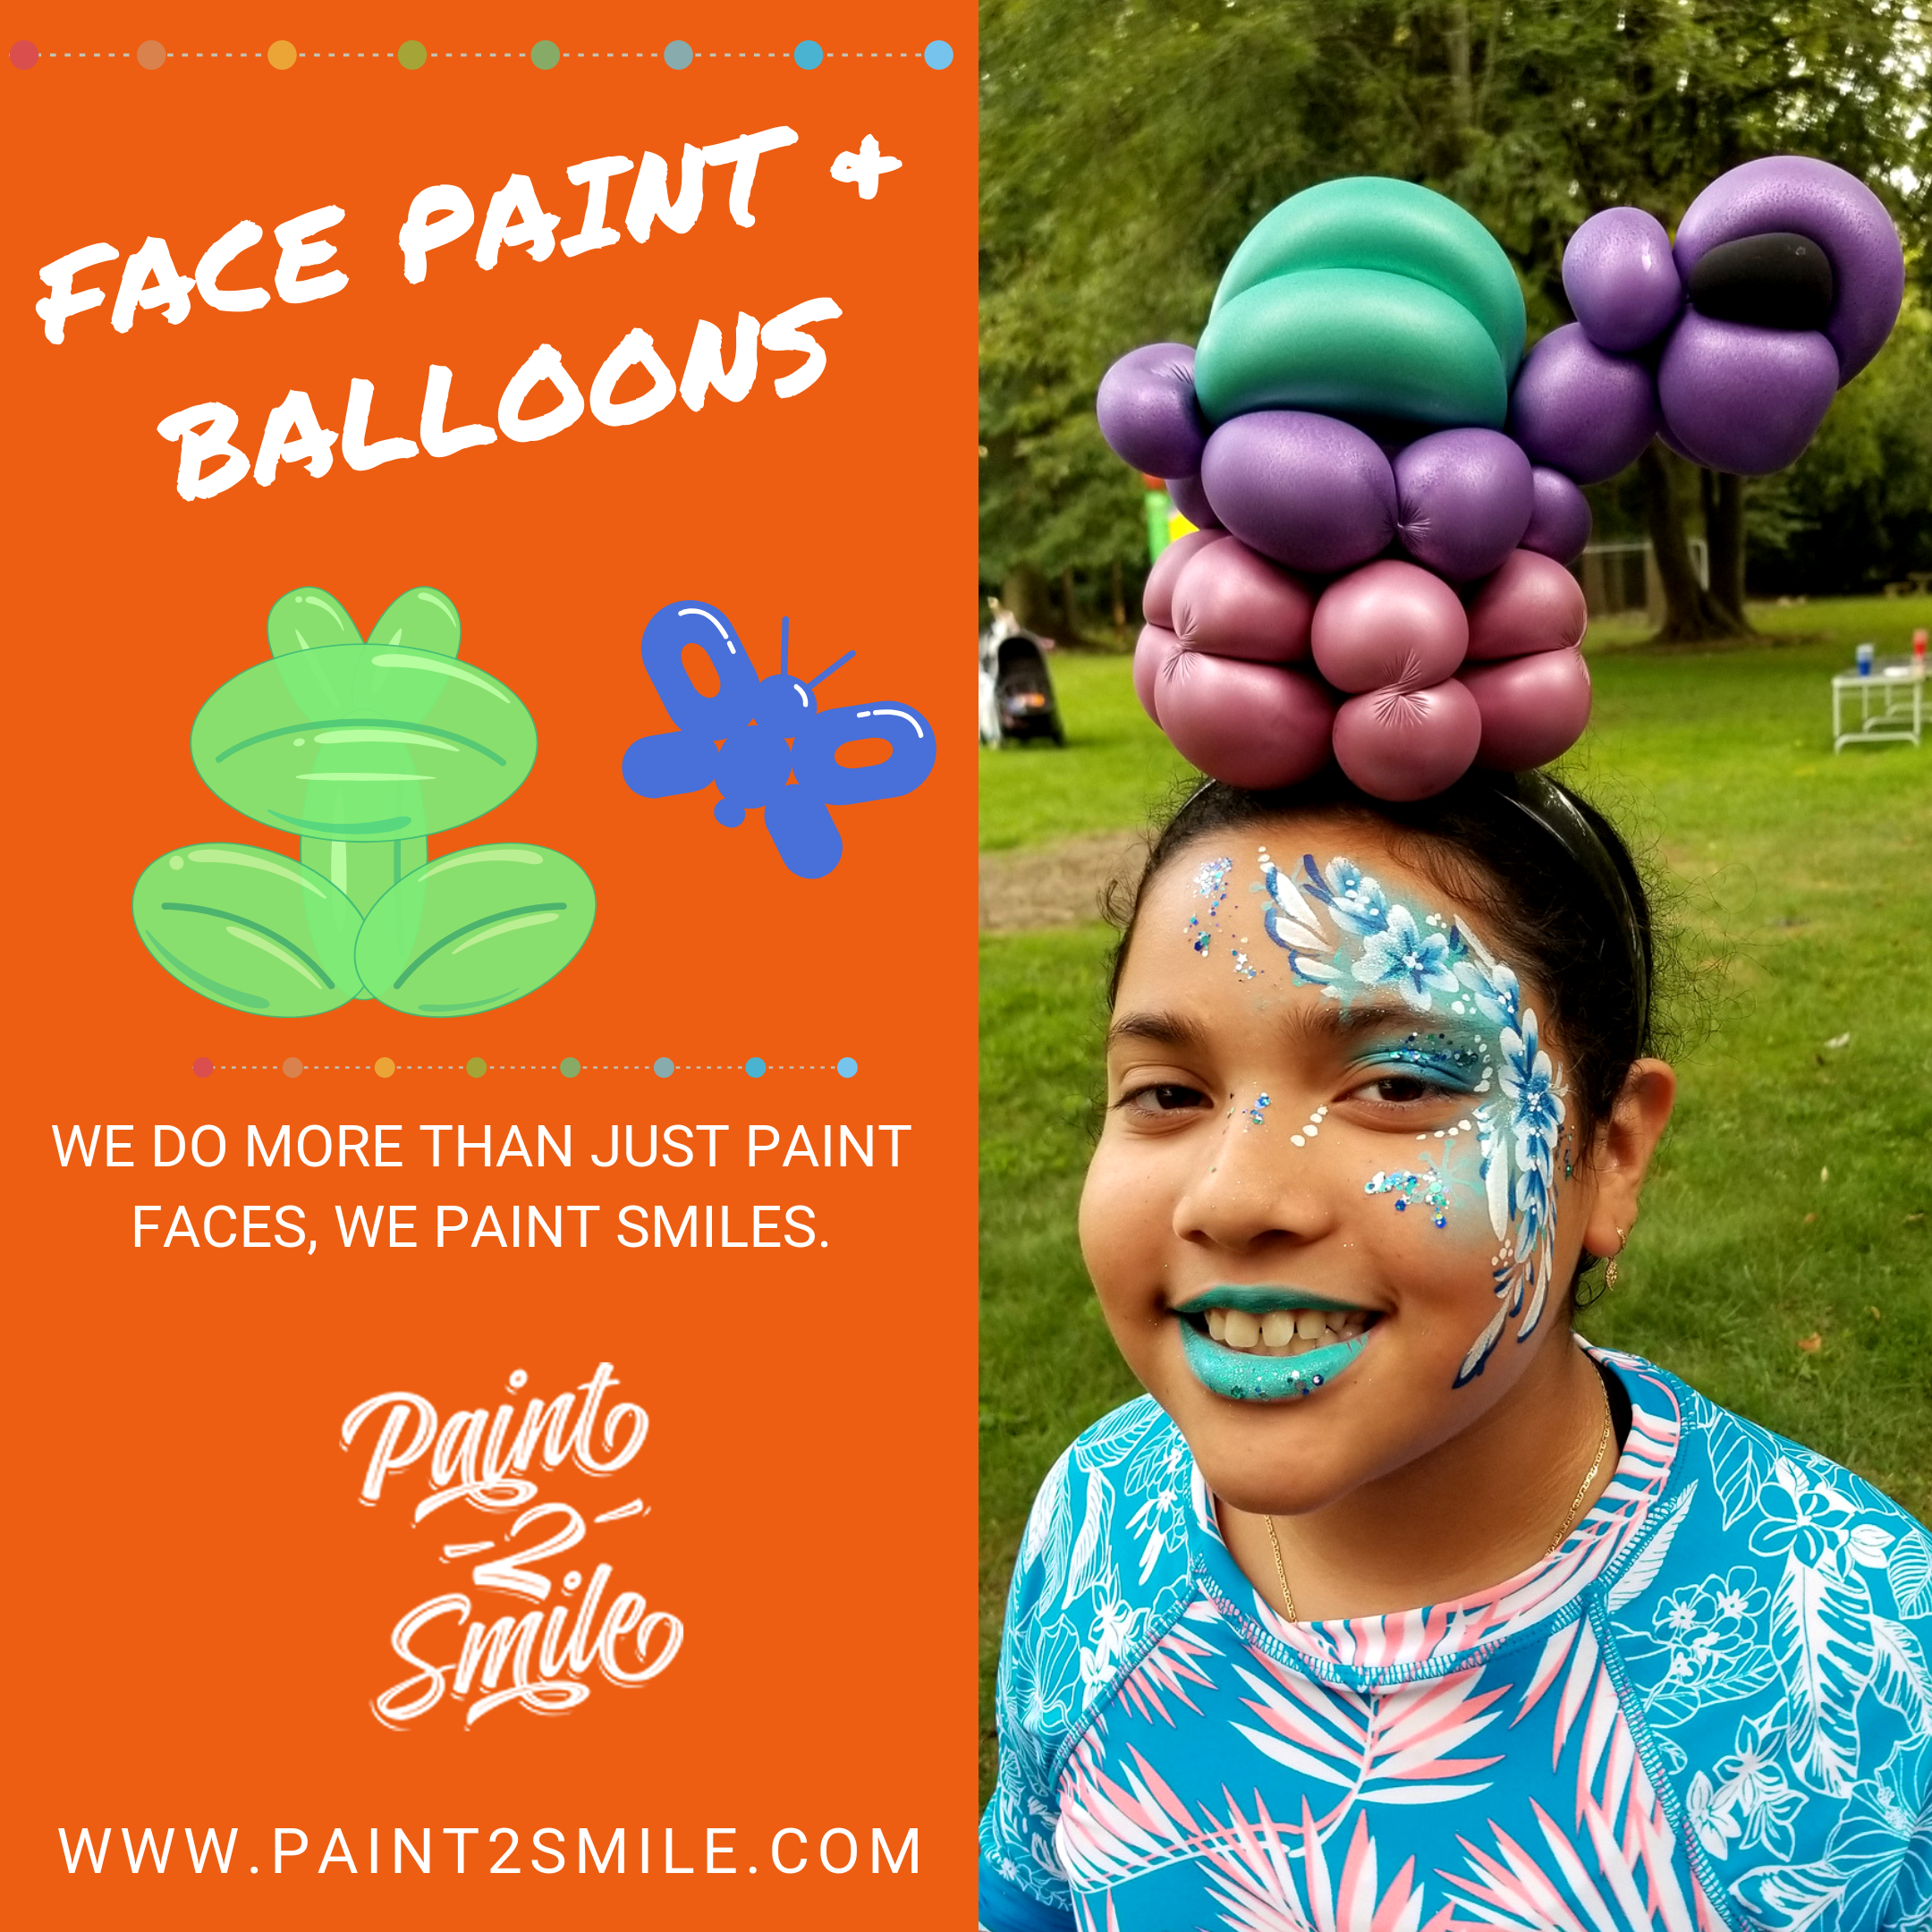 face painting of flowers and  turtle balloon headband on girl